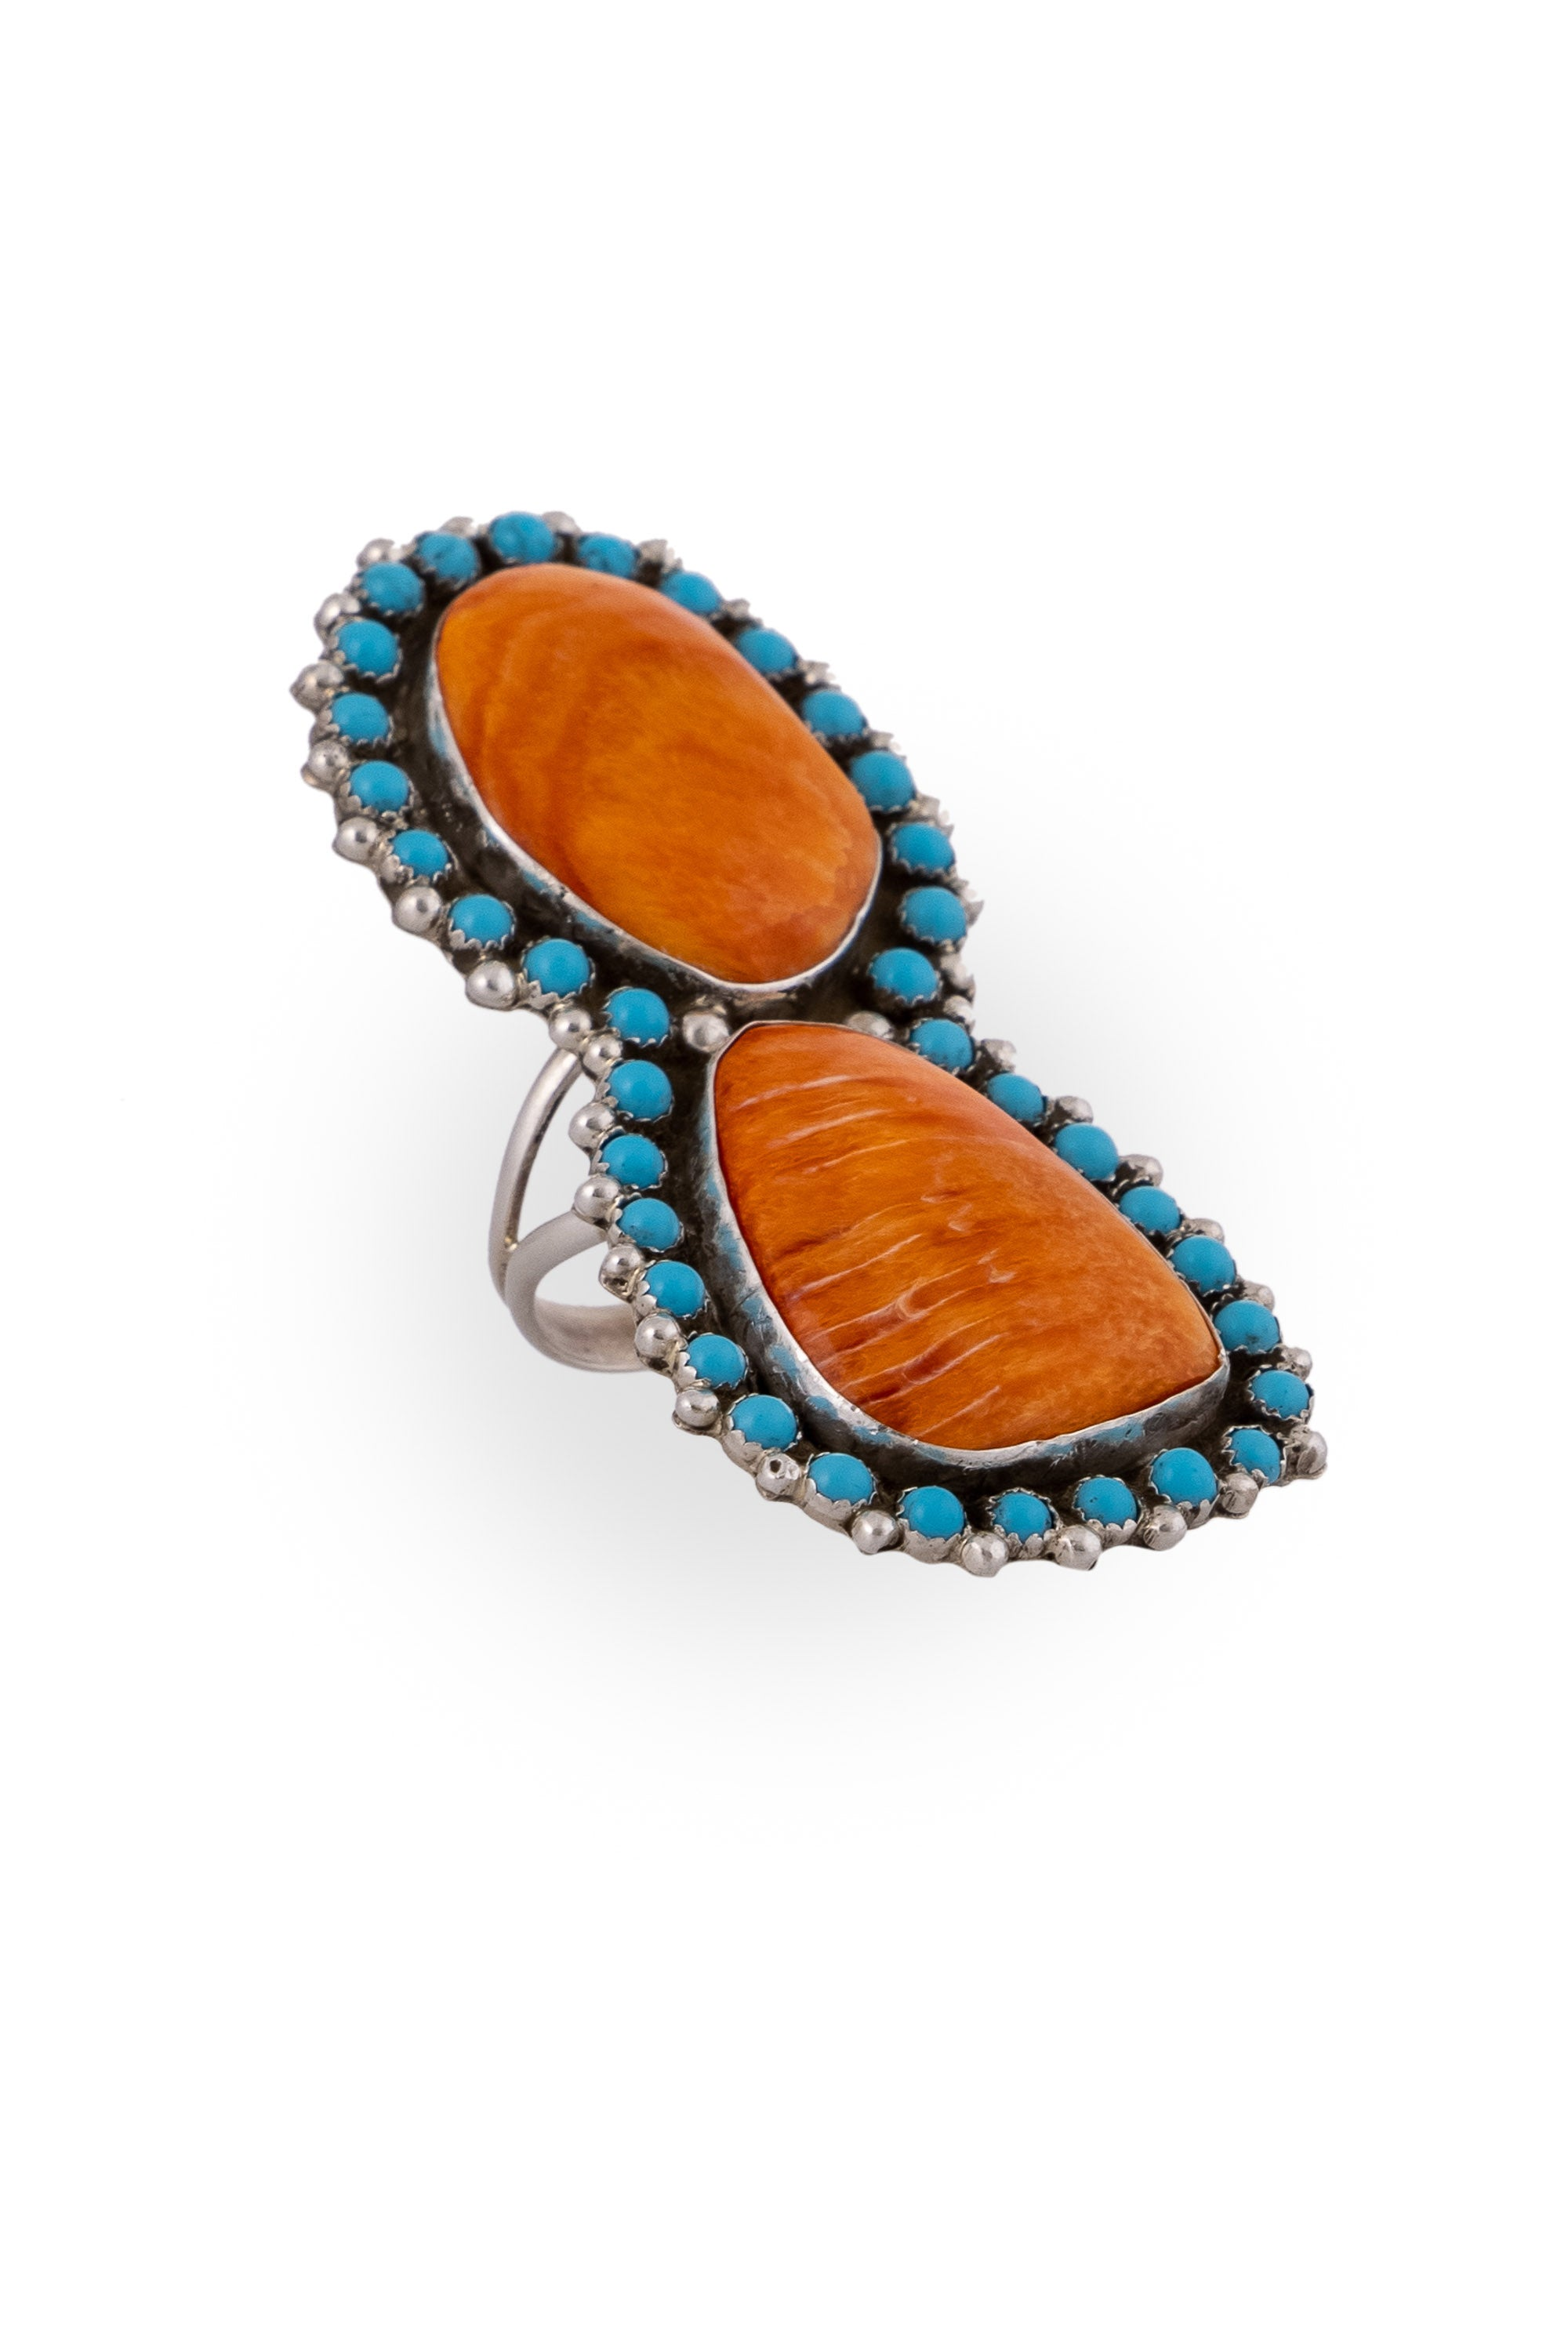 Ring, Turquoise & Orange Spiny Oyster, Double Stone, Hallmark, 676